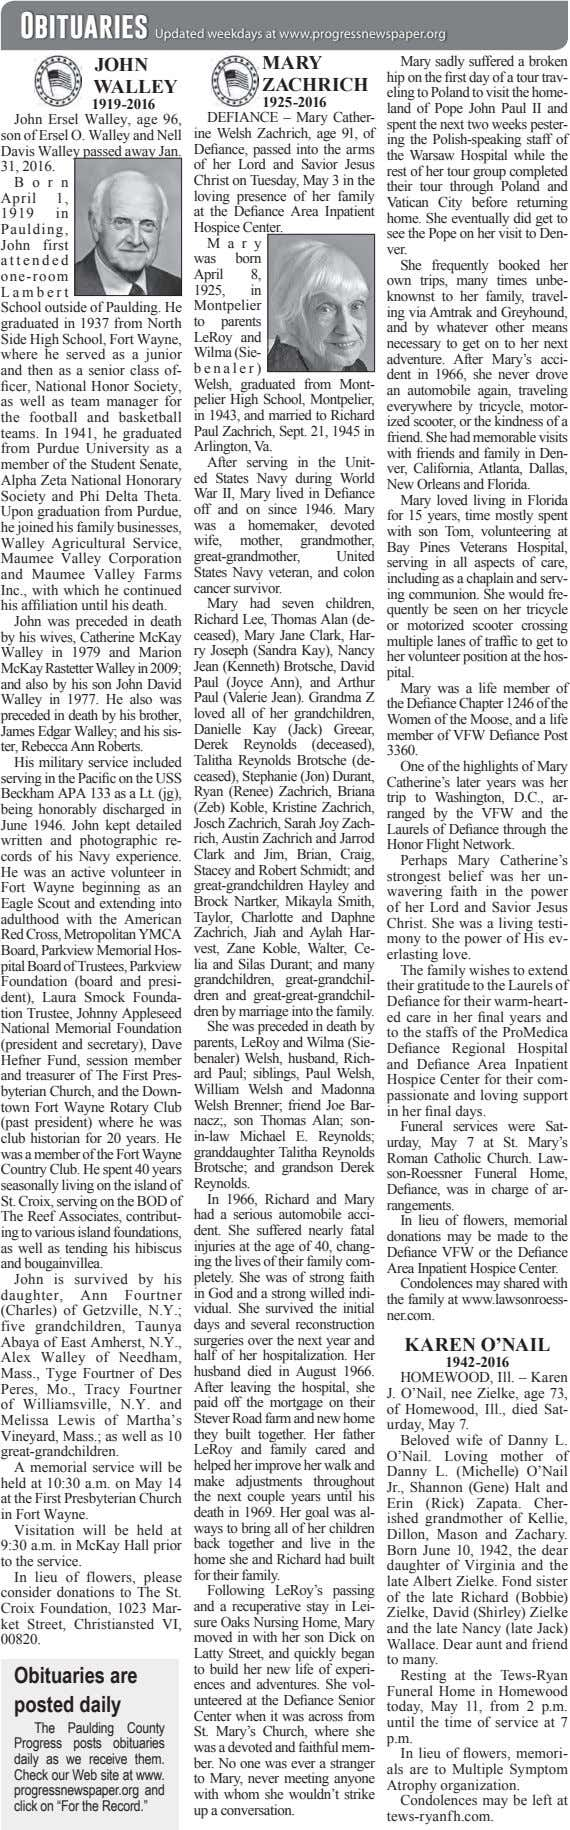 Obituaries Updated weekdays at www.progressnewspaper.org JOHN MARY Mary sadly suffered a broken WALLEY ZACHRICH